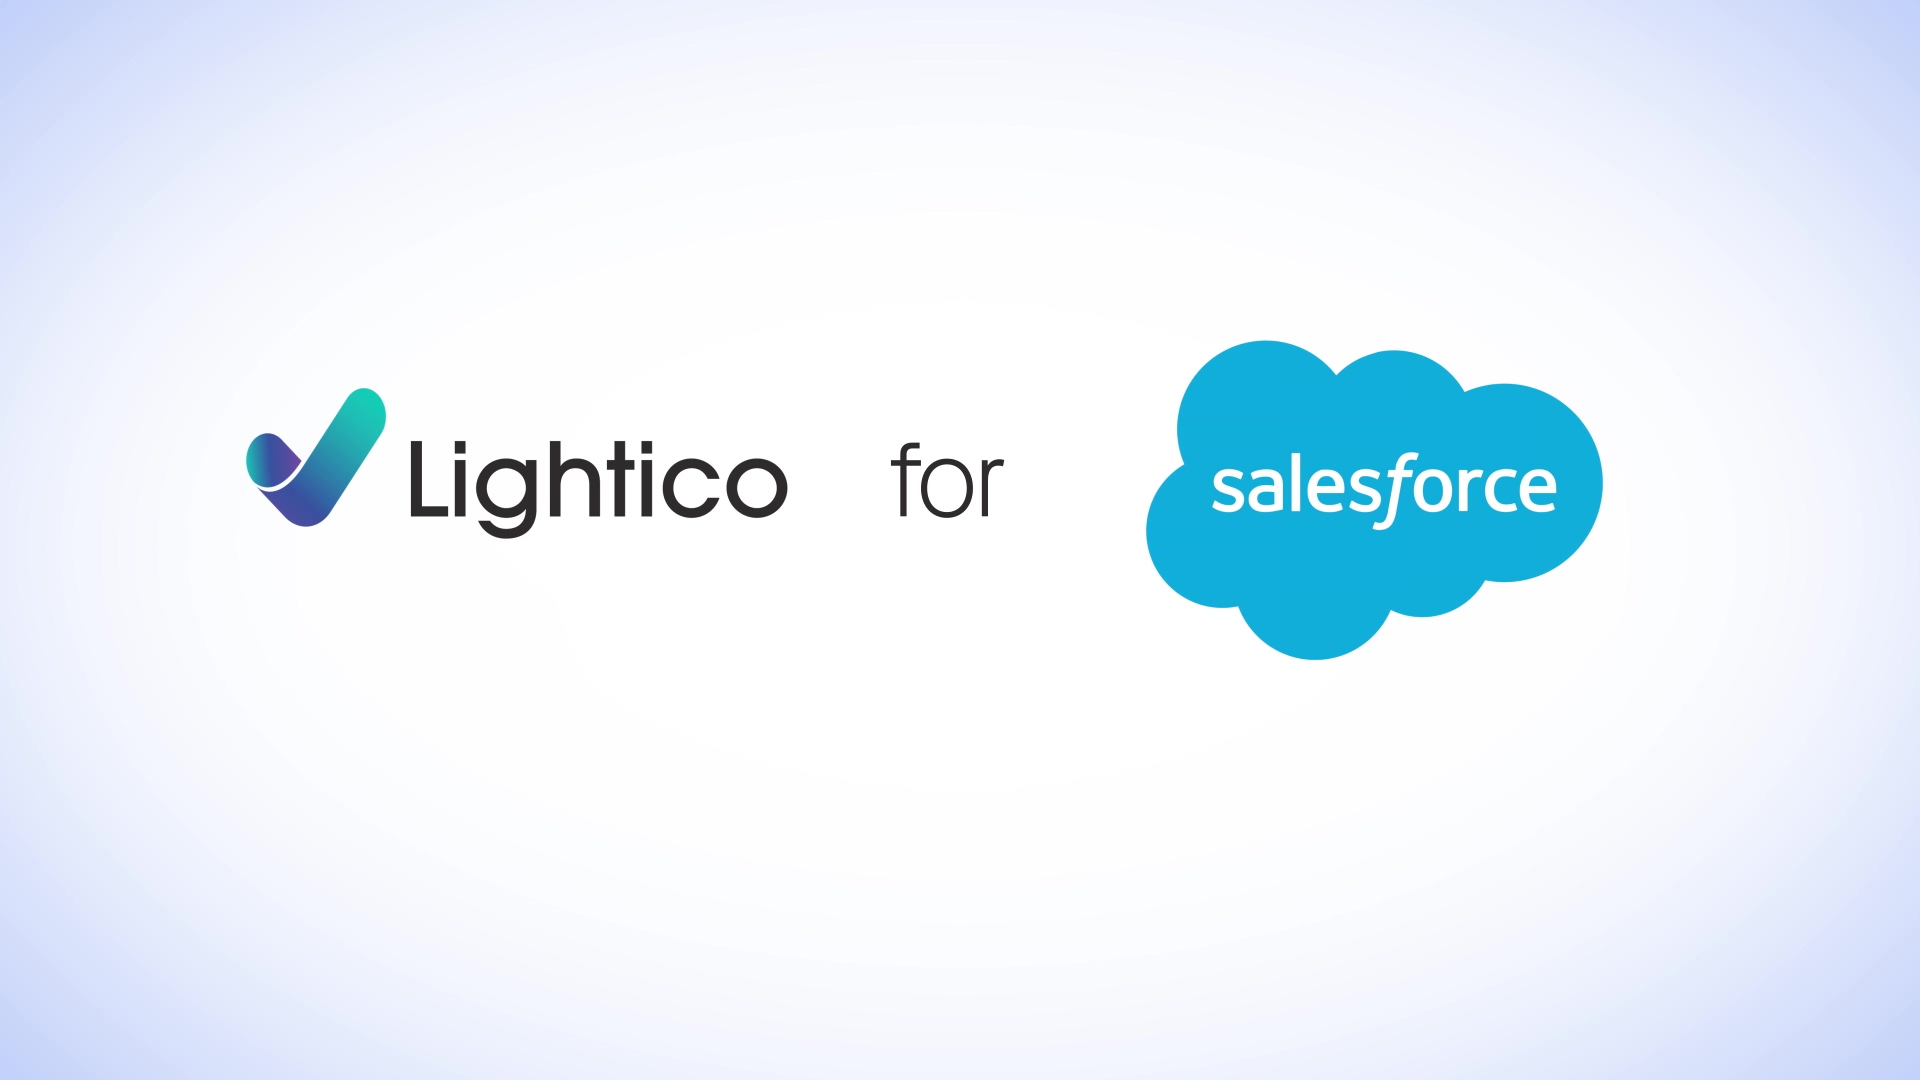 Lightico_for_Salesforce-1